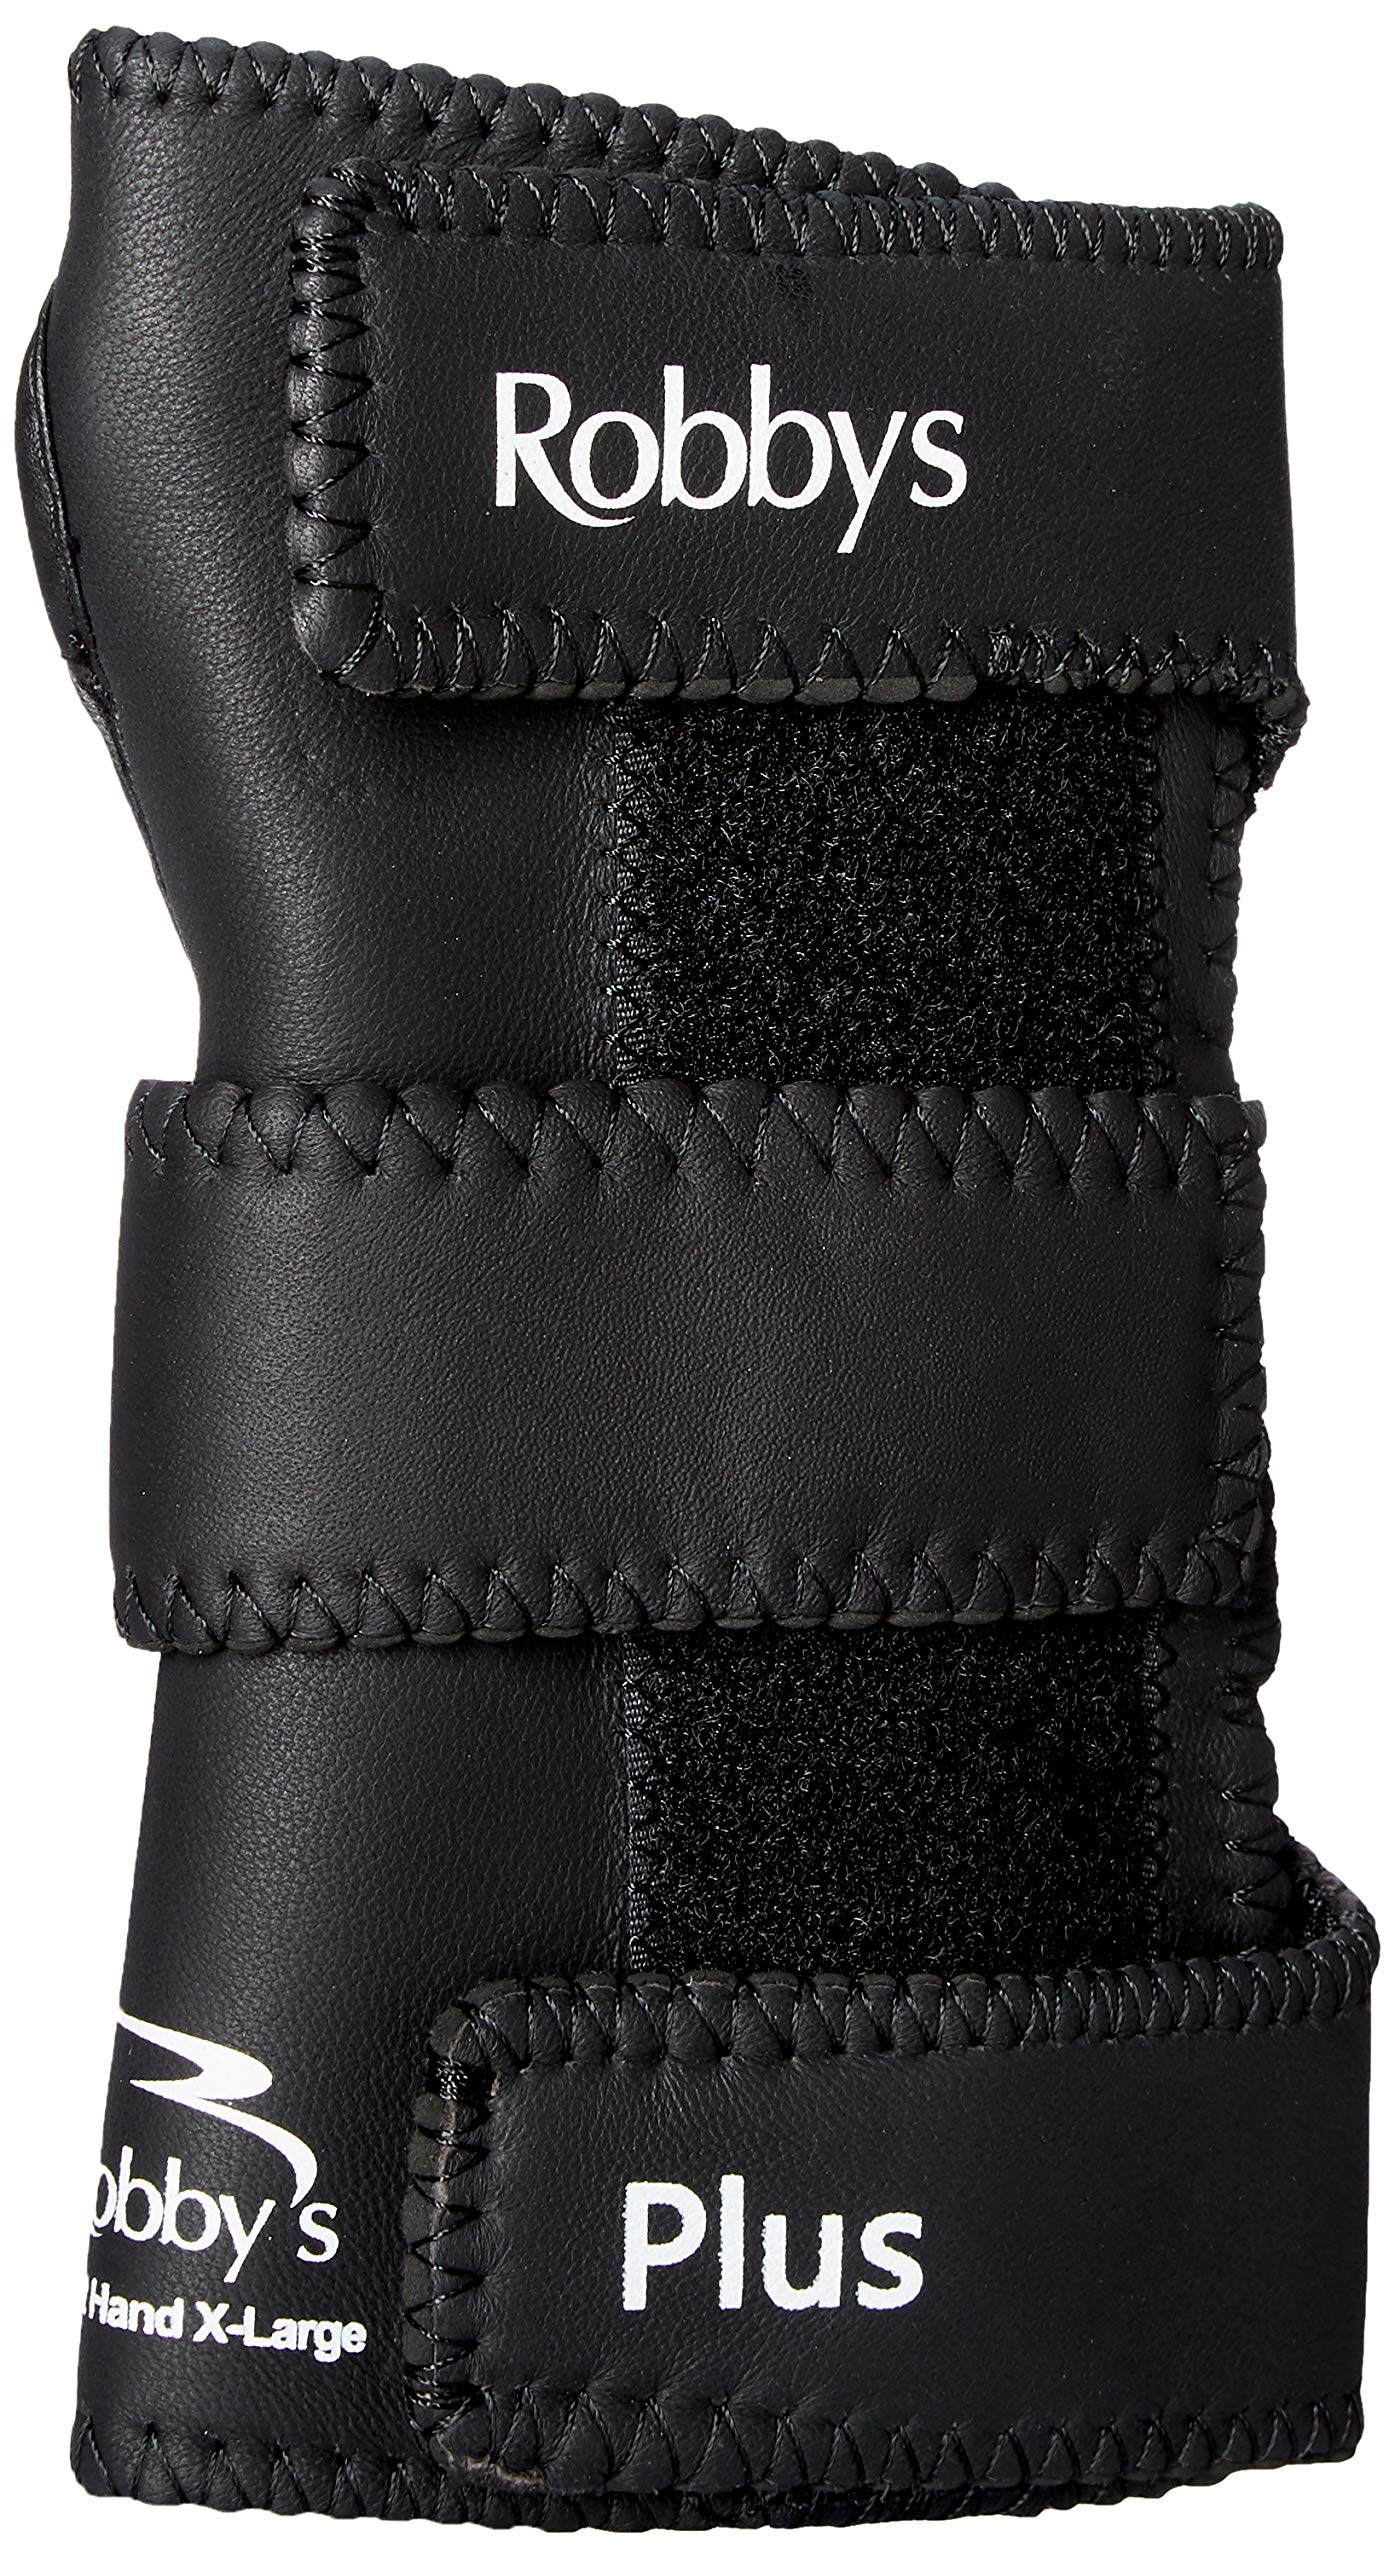 Robby's Leather Plus Right Wrist Support, Petite by Robby's